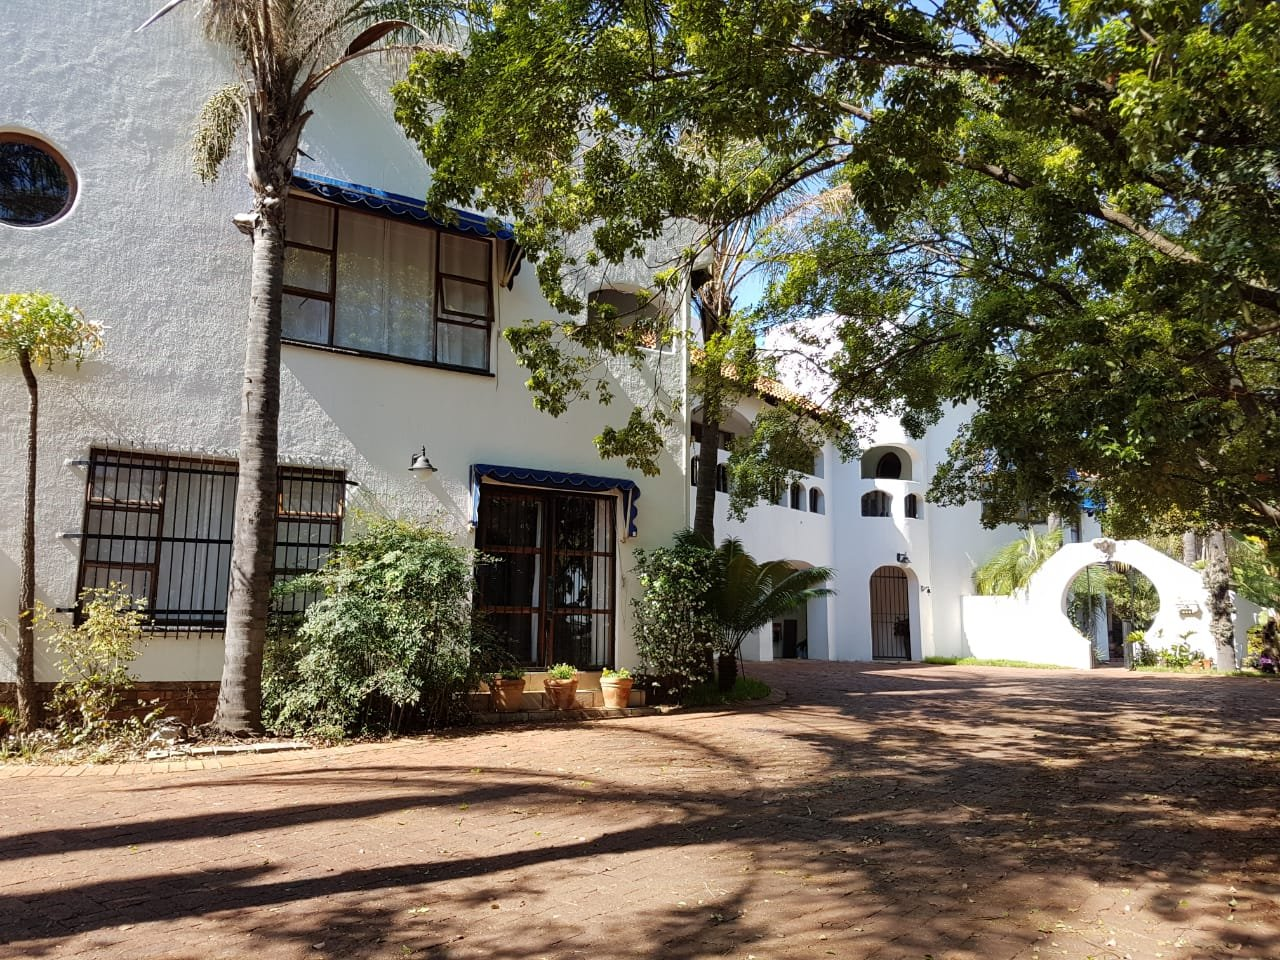 Centurion, Zwartkop Property  | Houses For Sale Zwartkop, Zwartkop, House 6 bedrooms property for sale Price:3,495,000